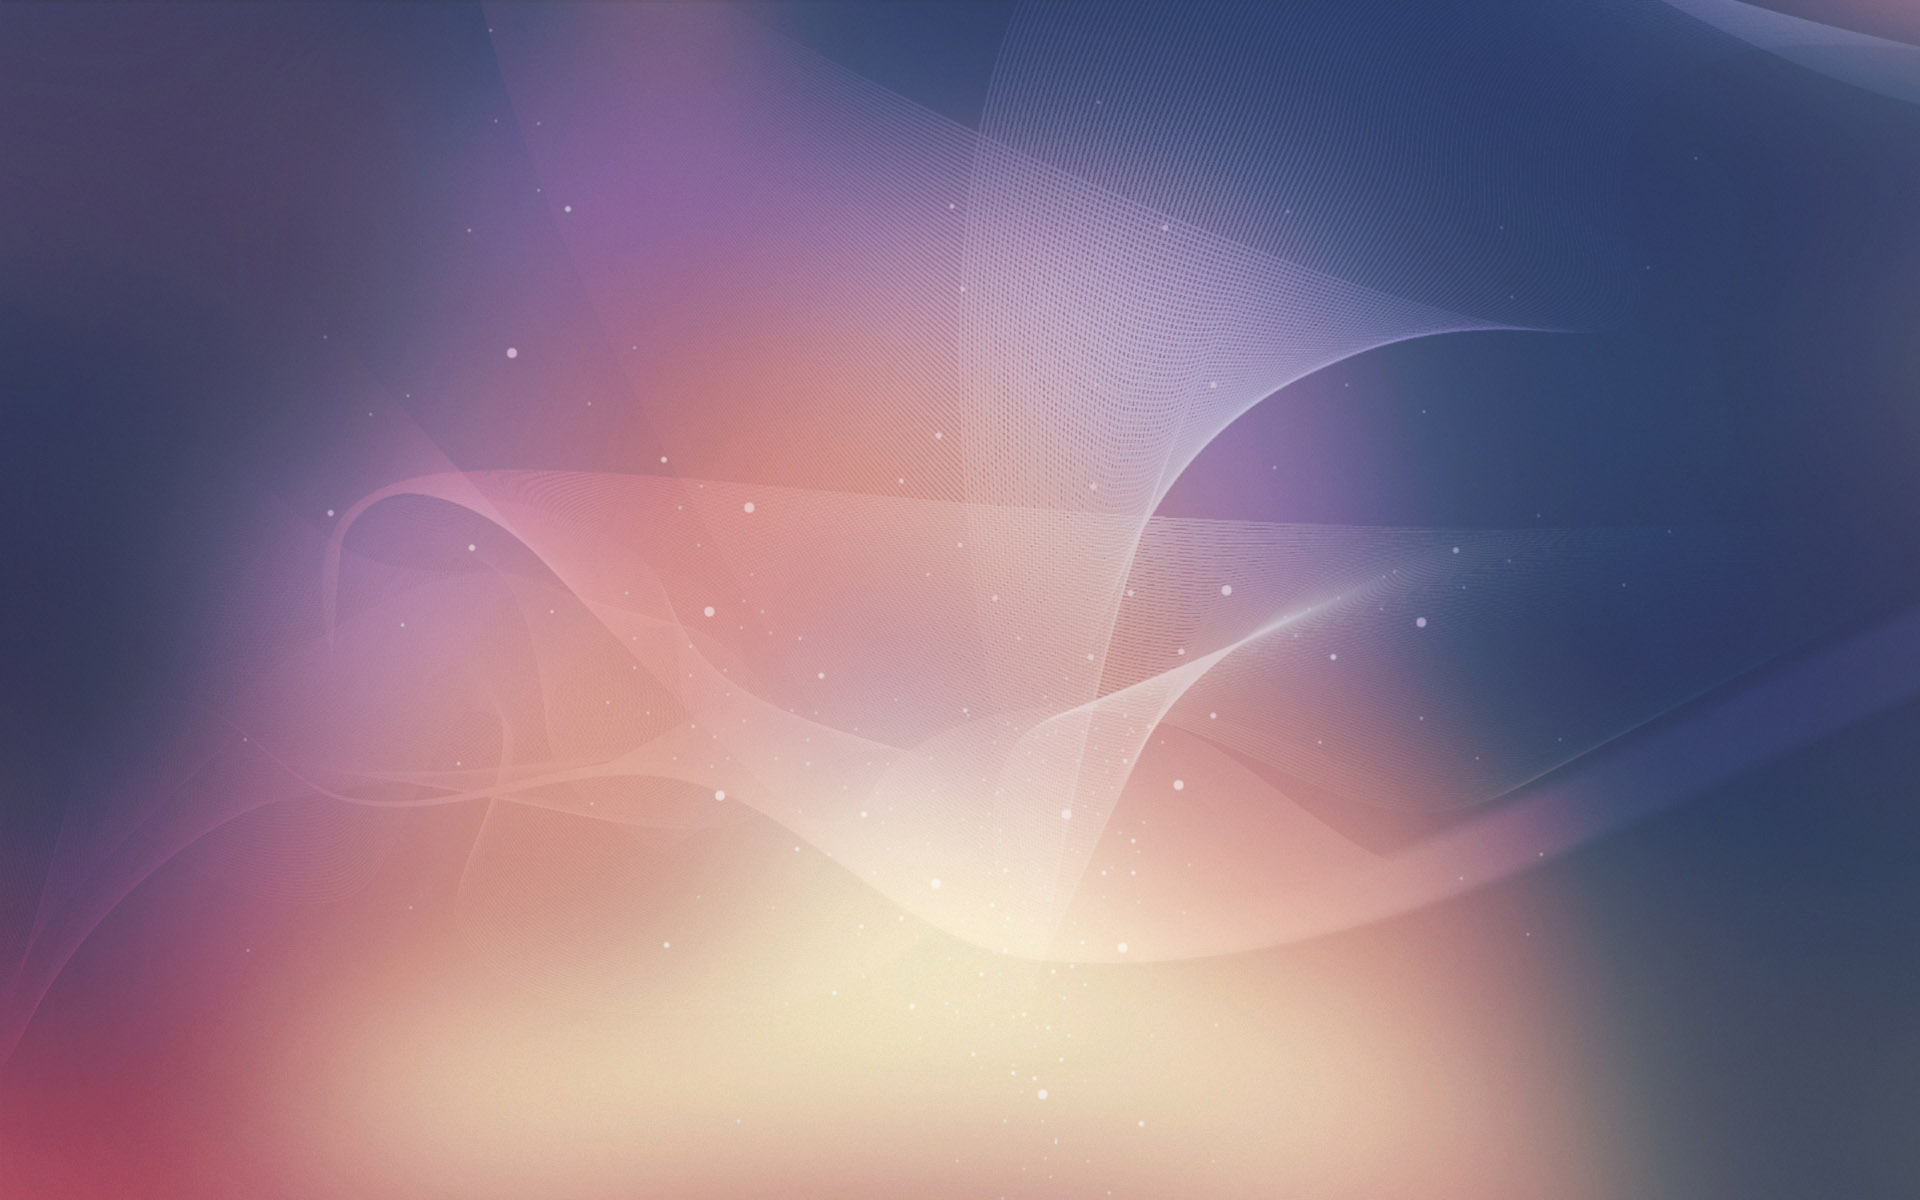 HD color background wallpaper 18429 - Background color theme